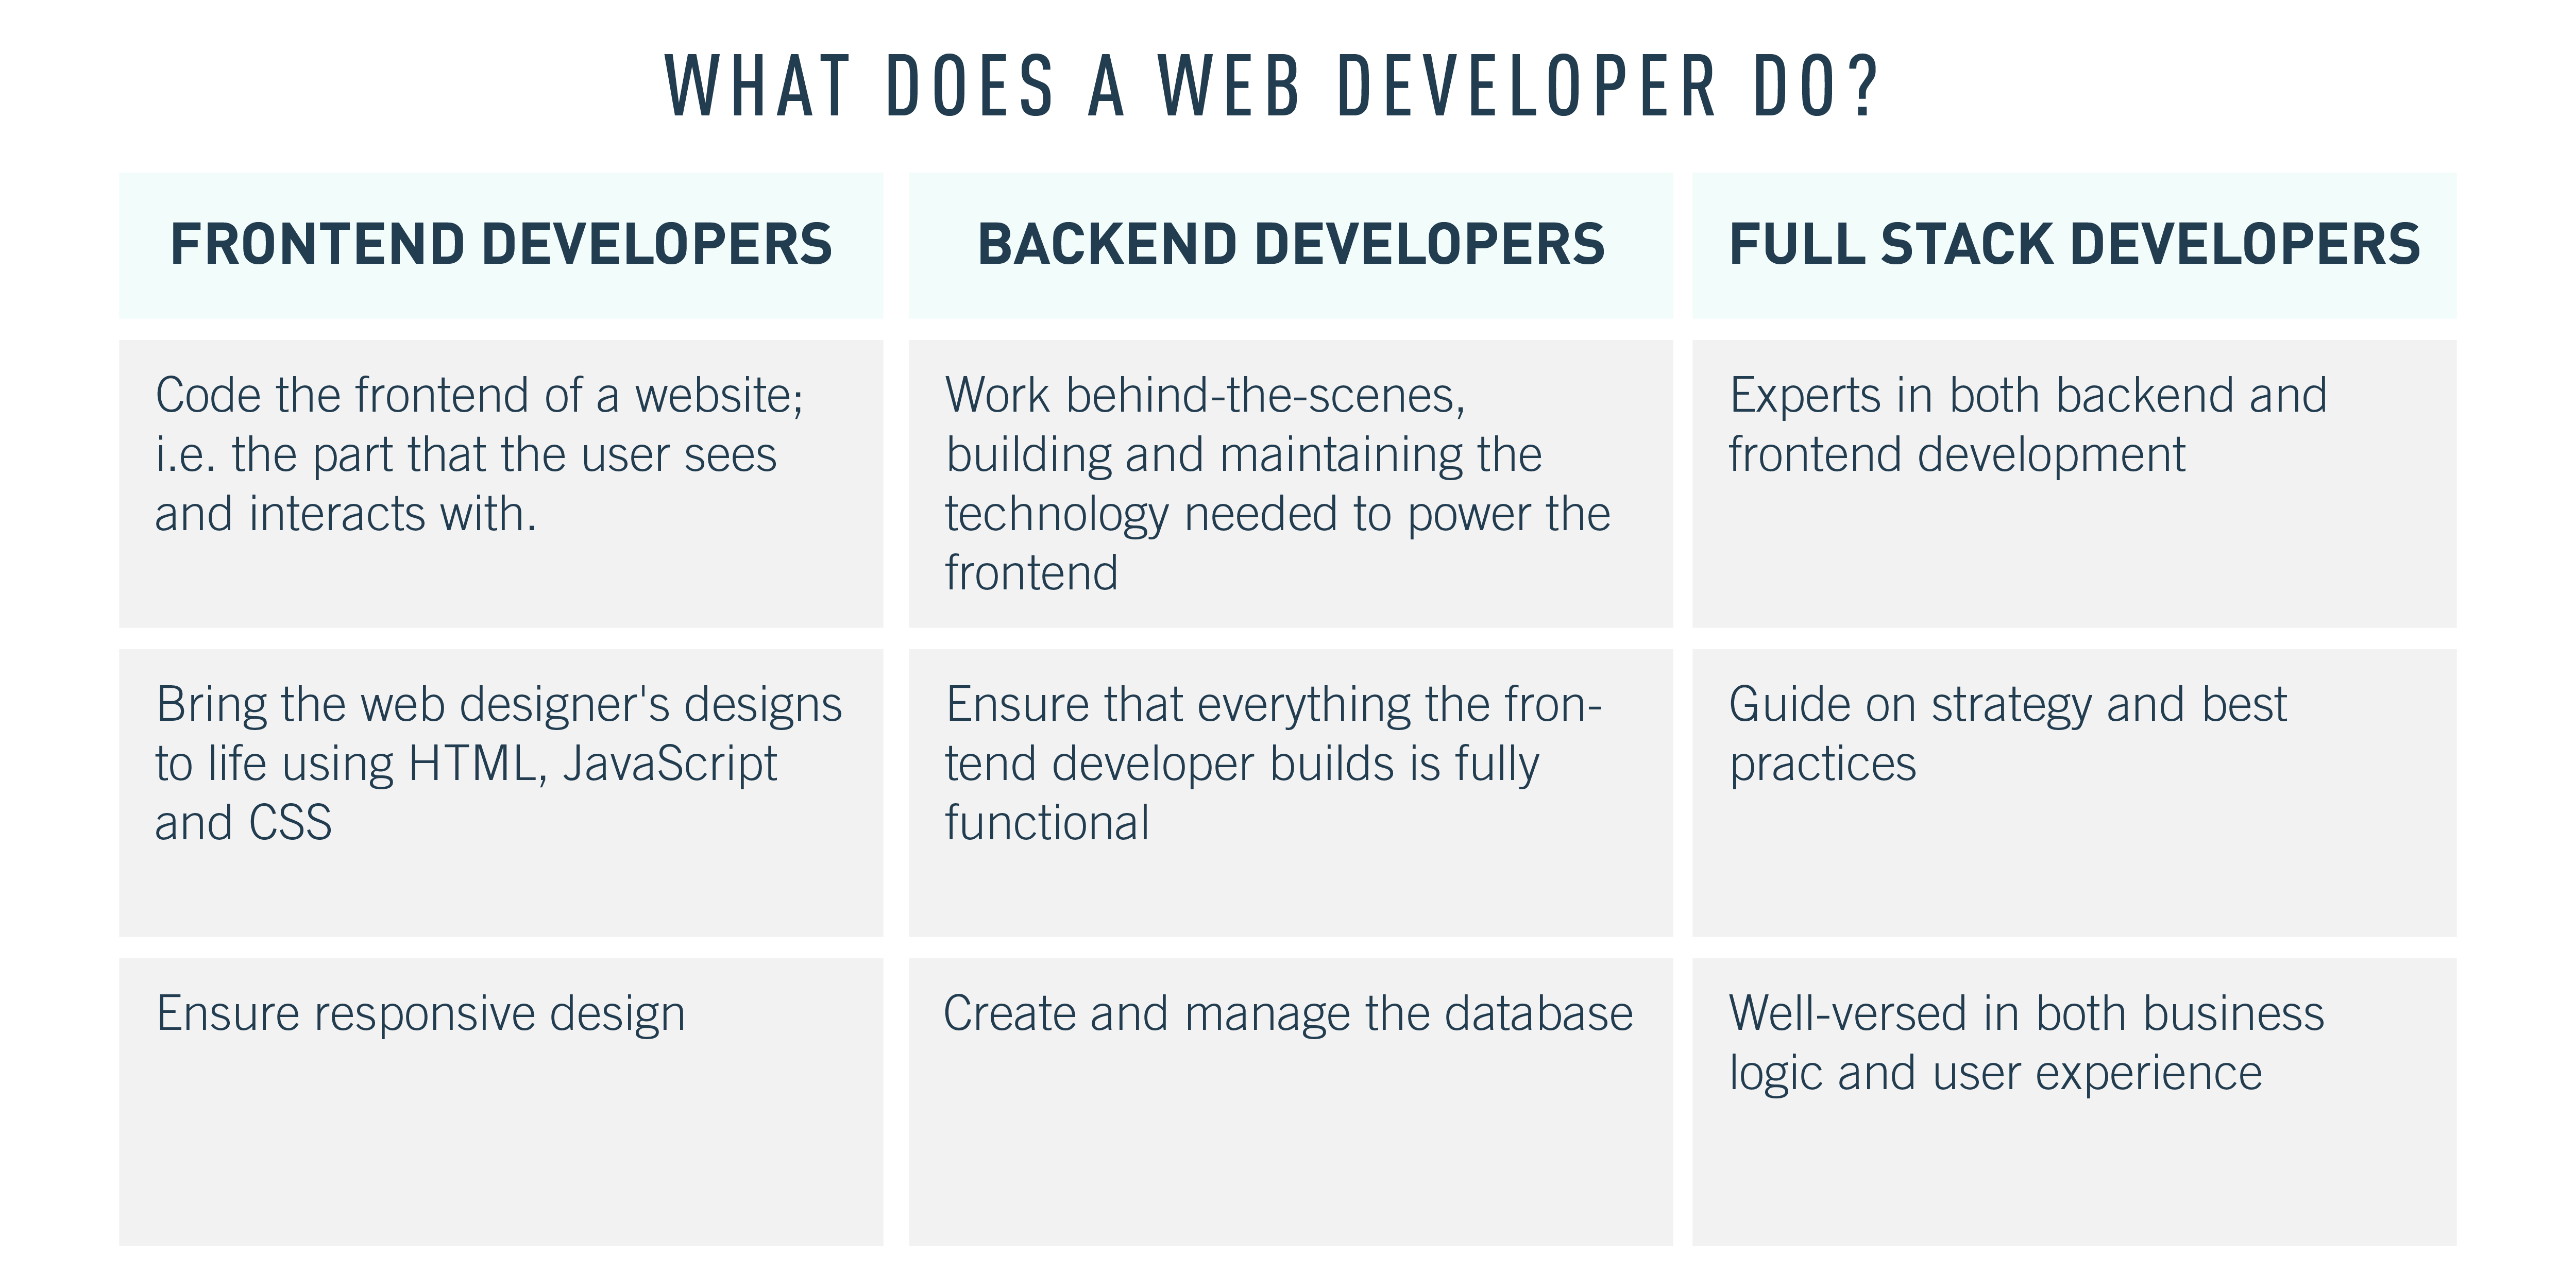 A comparison of the tasks of a frontend developer vs. backend developer vs. full-stack developer